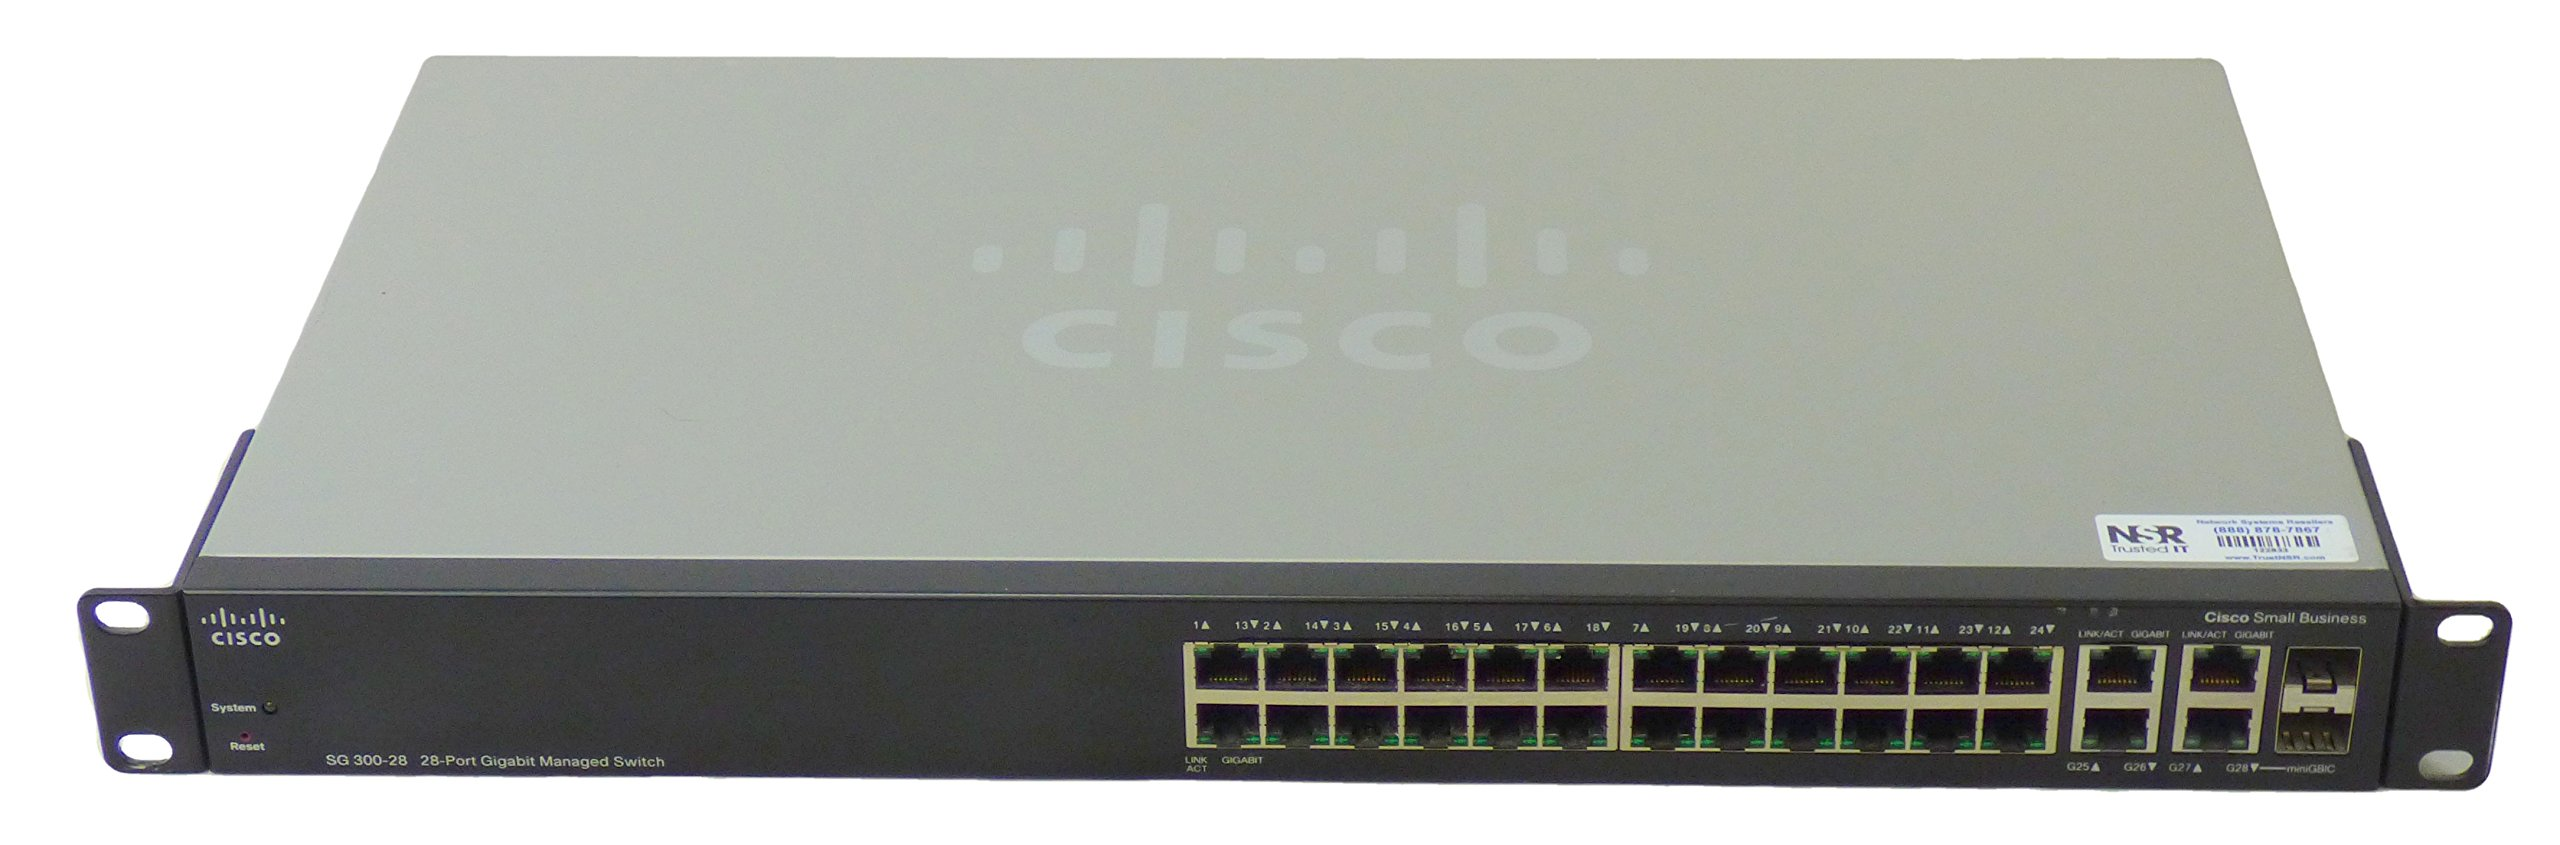 Cisco Small Business SG300-28 Switch - SRW2024-K9